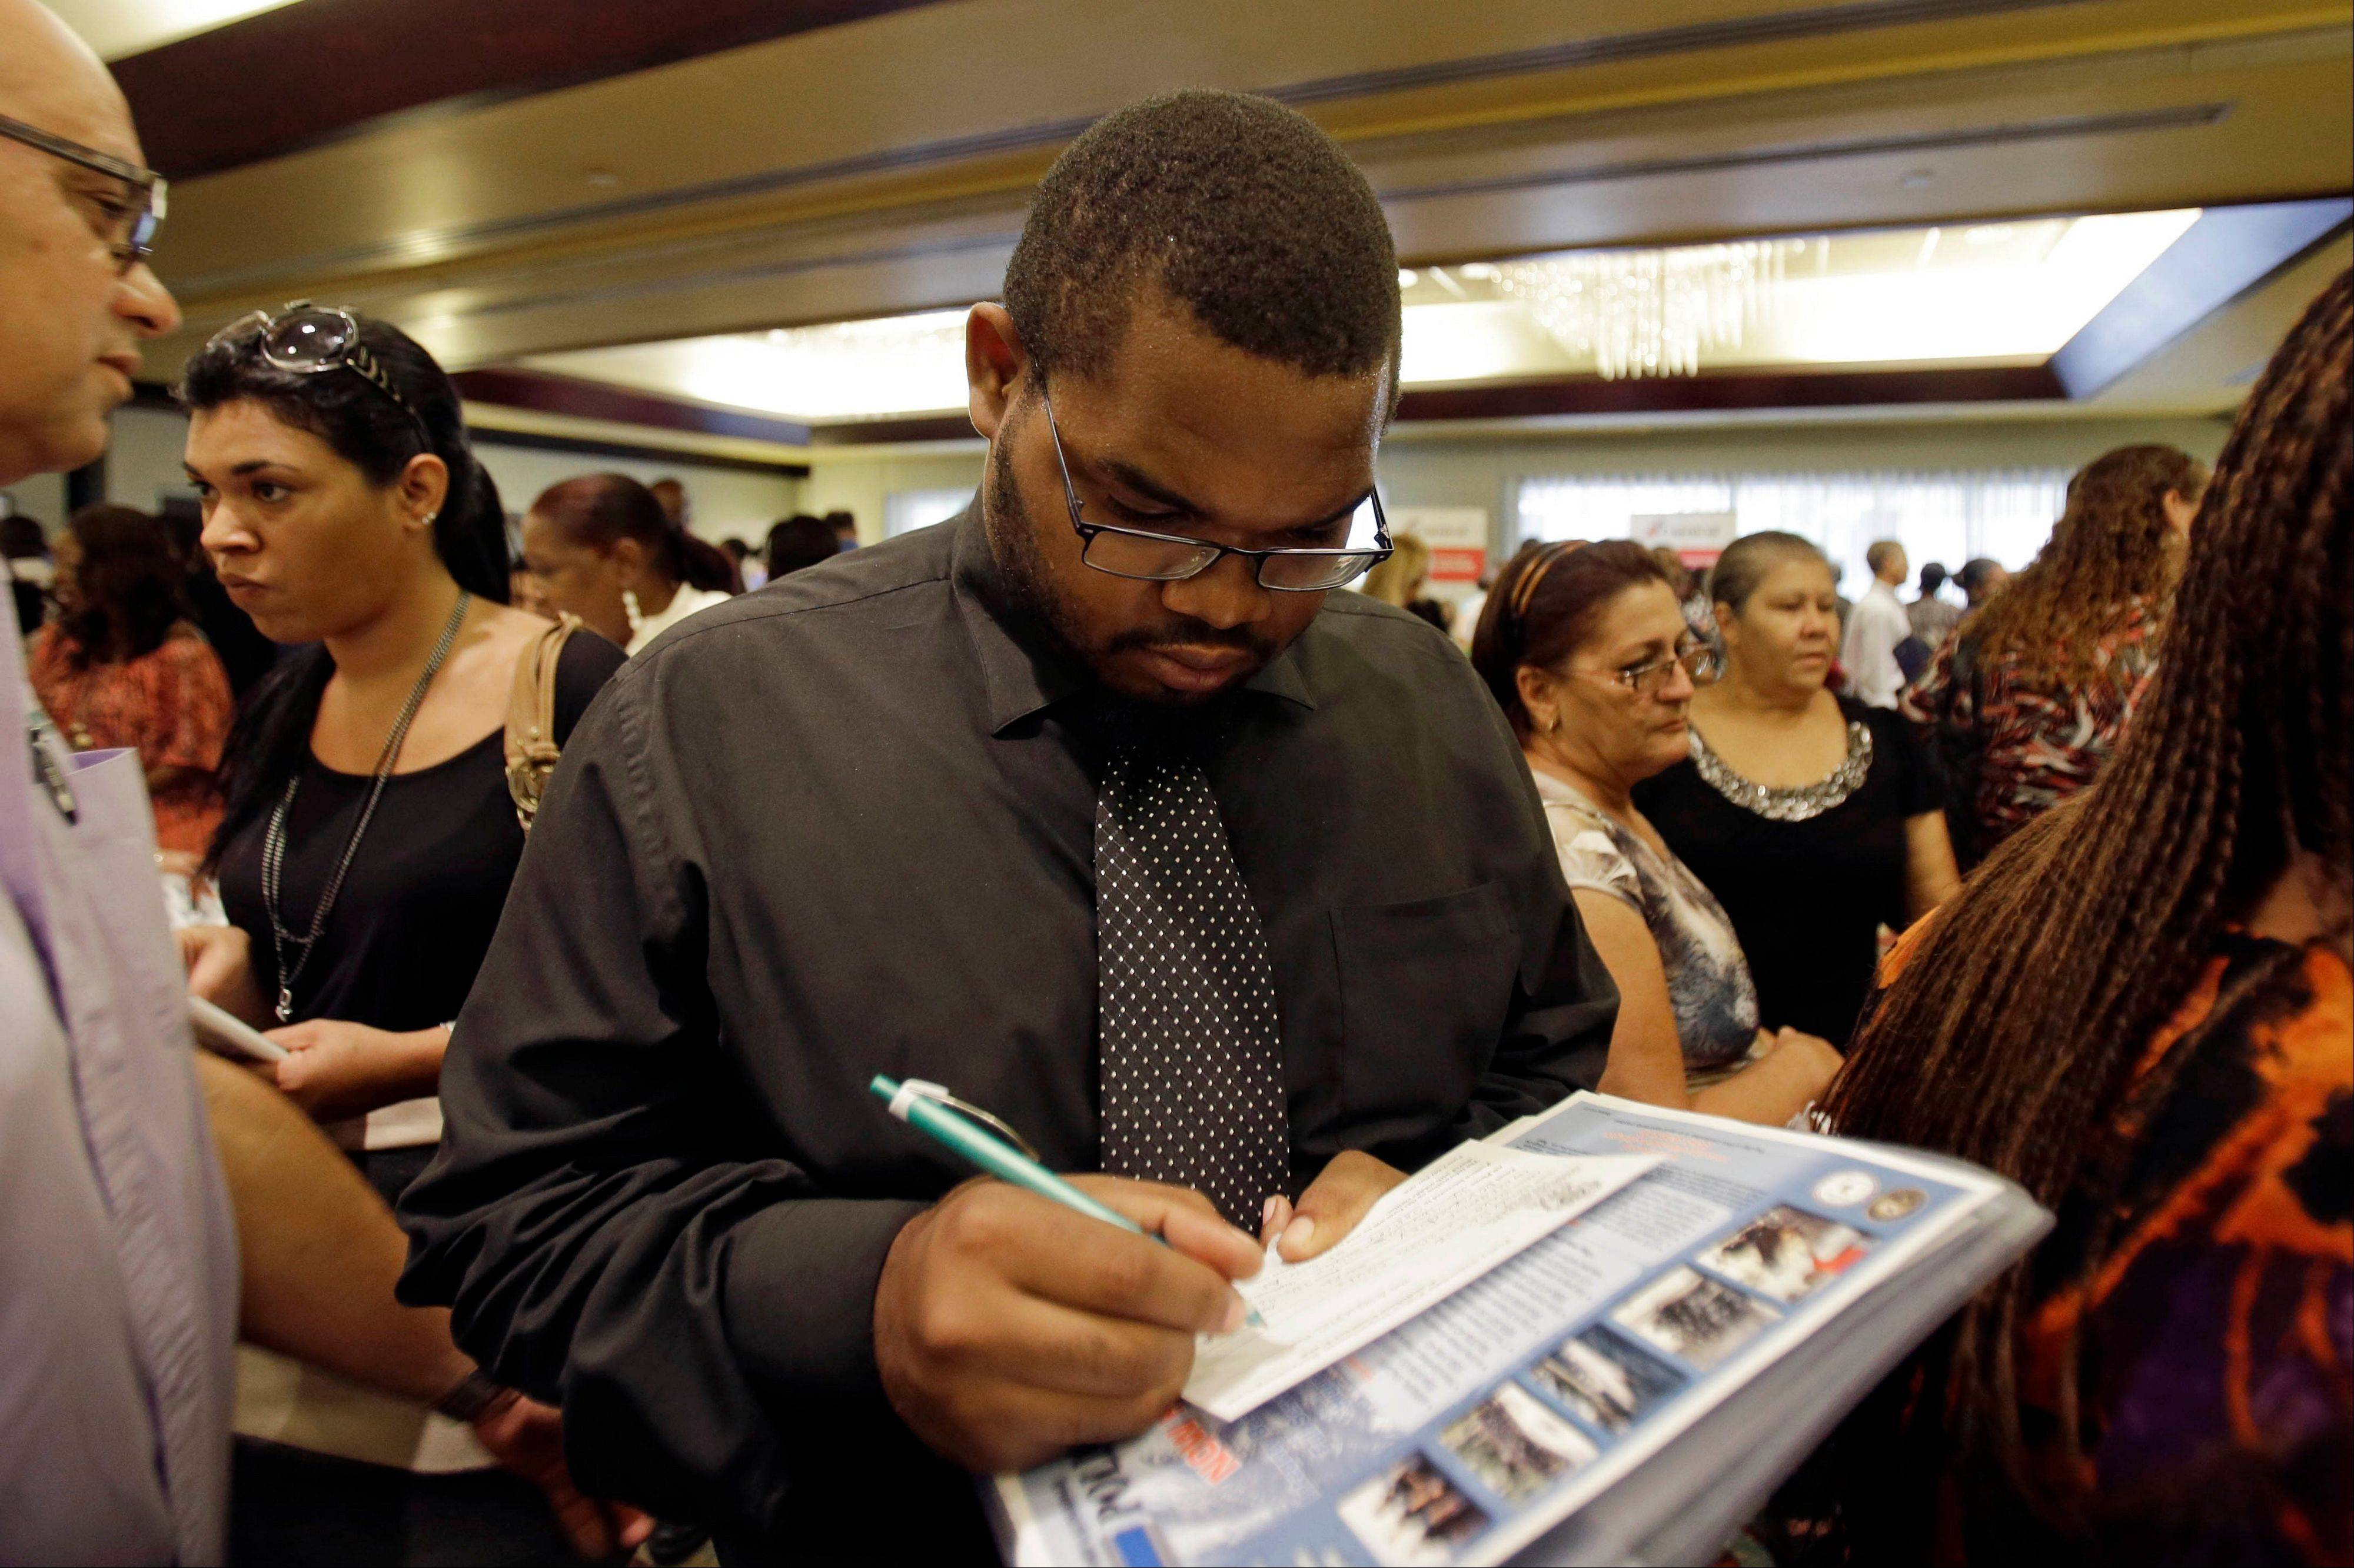 Associated Press Job seeker Kelsey Devoe, of Miramar, Fla., fills out a contact form at a job fair in Miami Lakes, Fla. The number of people seeking U.S. unemployment benefits rose 15,000 last week to a seasonally adjusted 309,000.